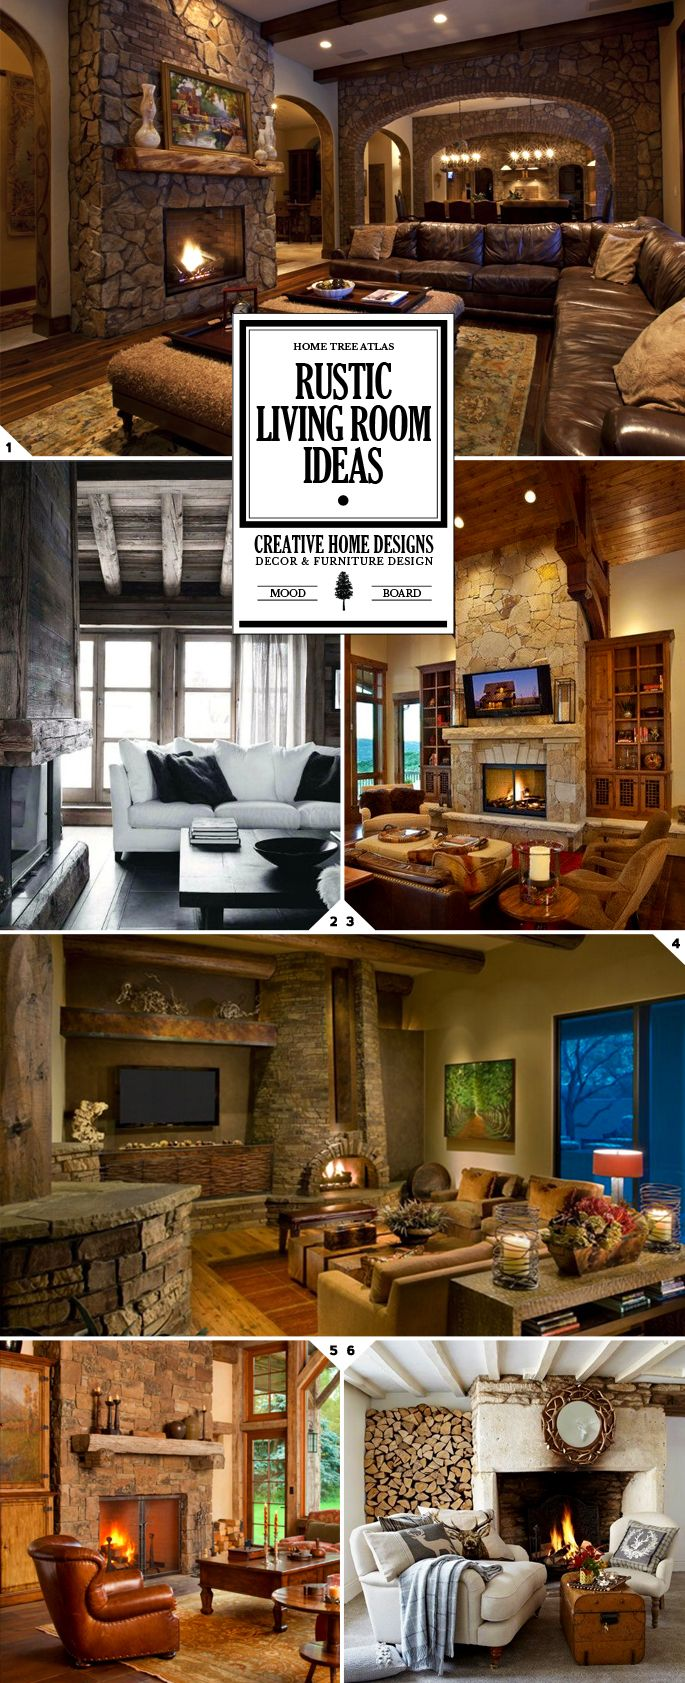 The general feel in a rustic living room is a cozy vibe, with earth tones decorating the space. Here are the rustic living room ideas that will help transform your space. Paint Colors and Wall Design Ideas If you take a look at the pictures in the mood board, most of the rustic living rooms […]